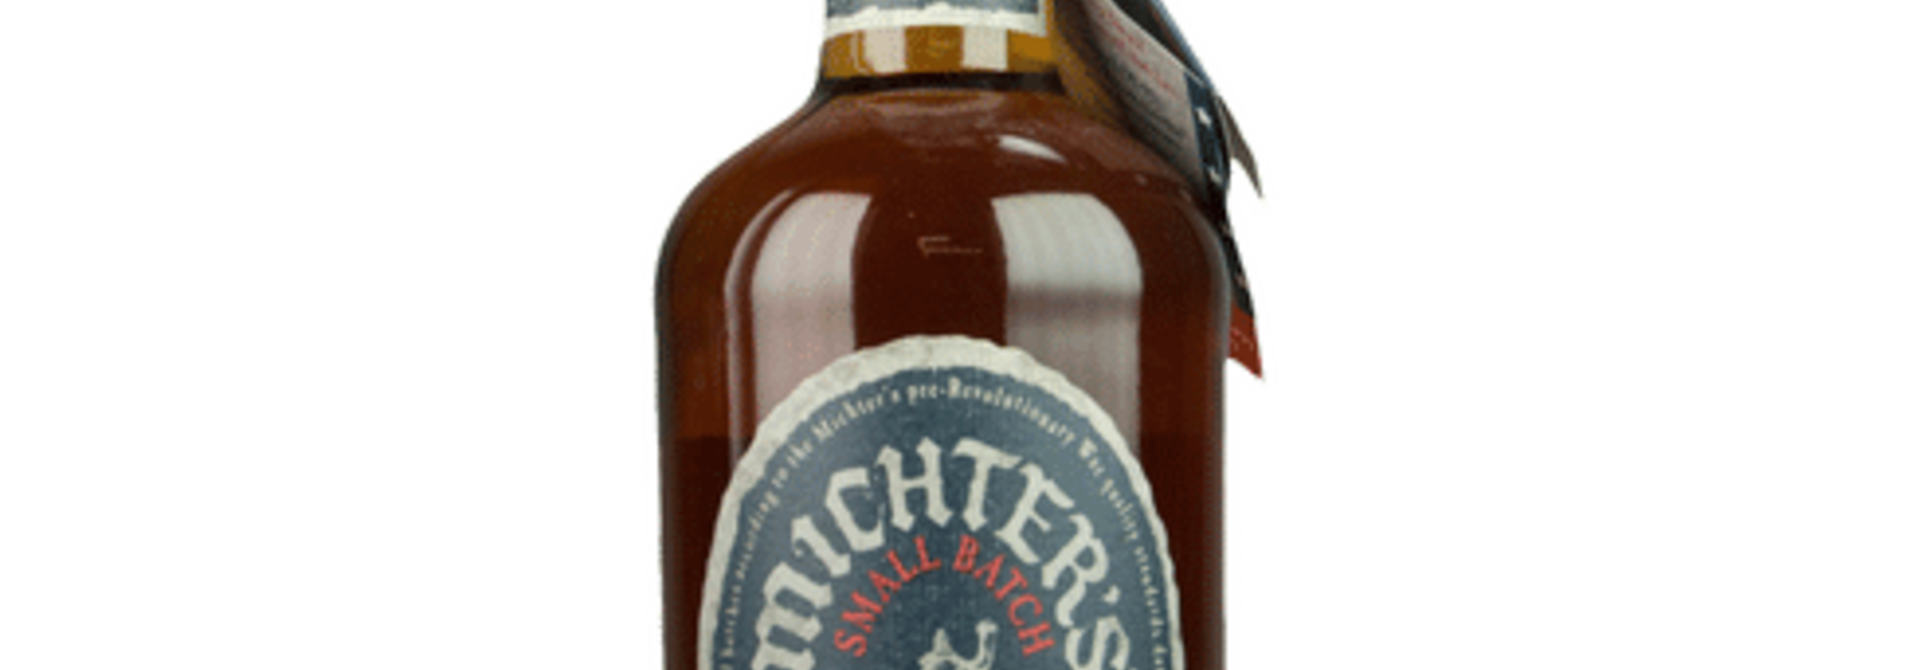 MICHTERS Unblended American 0.7ltr